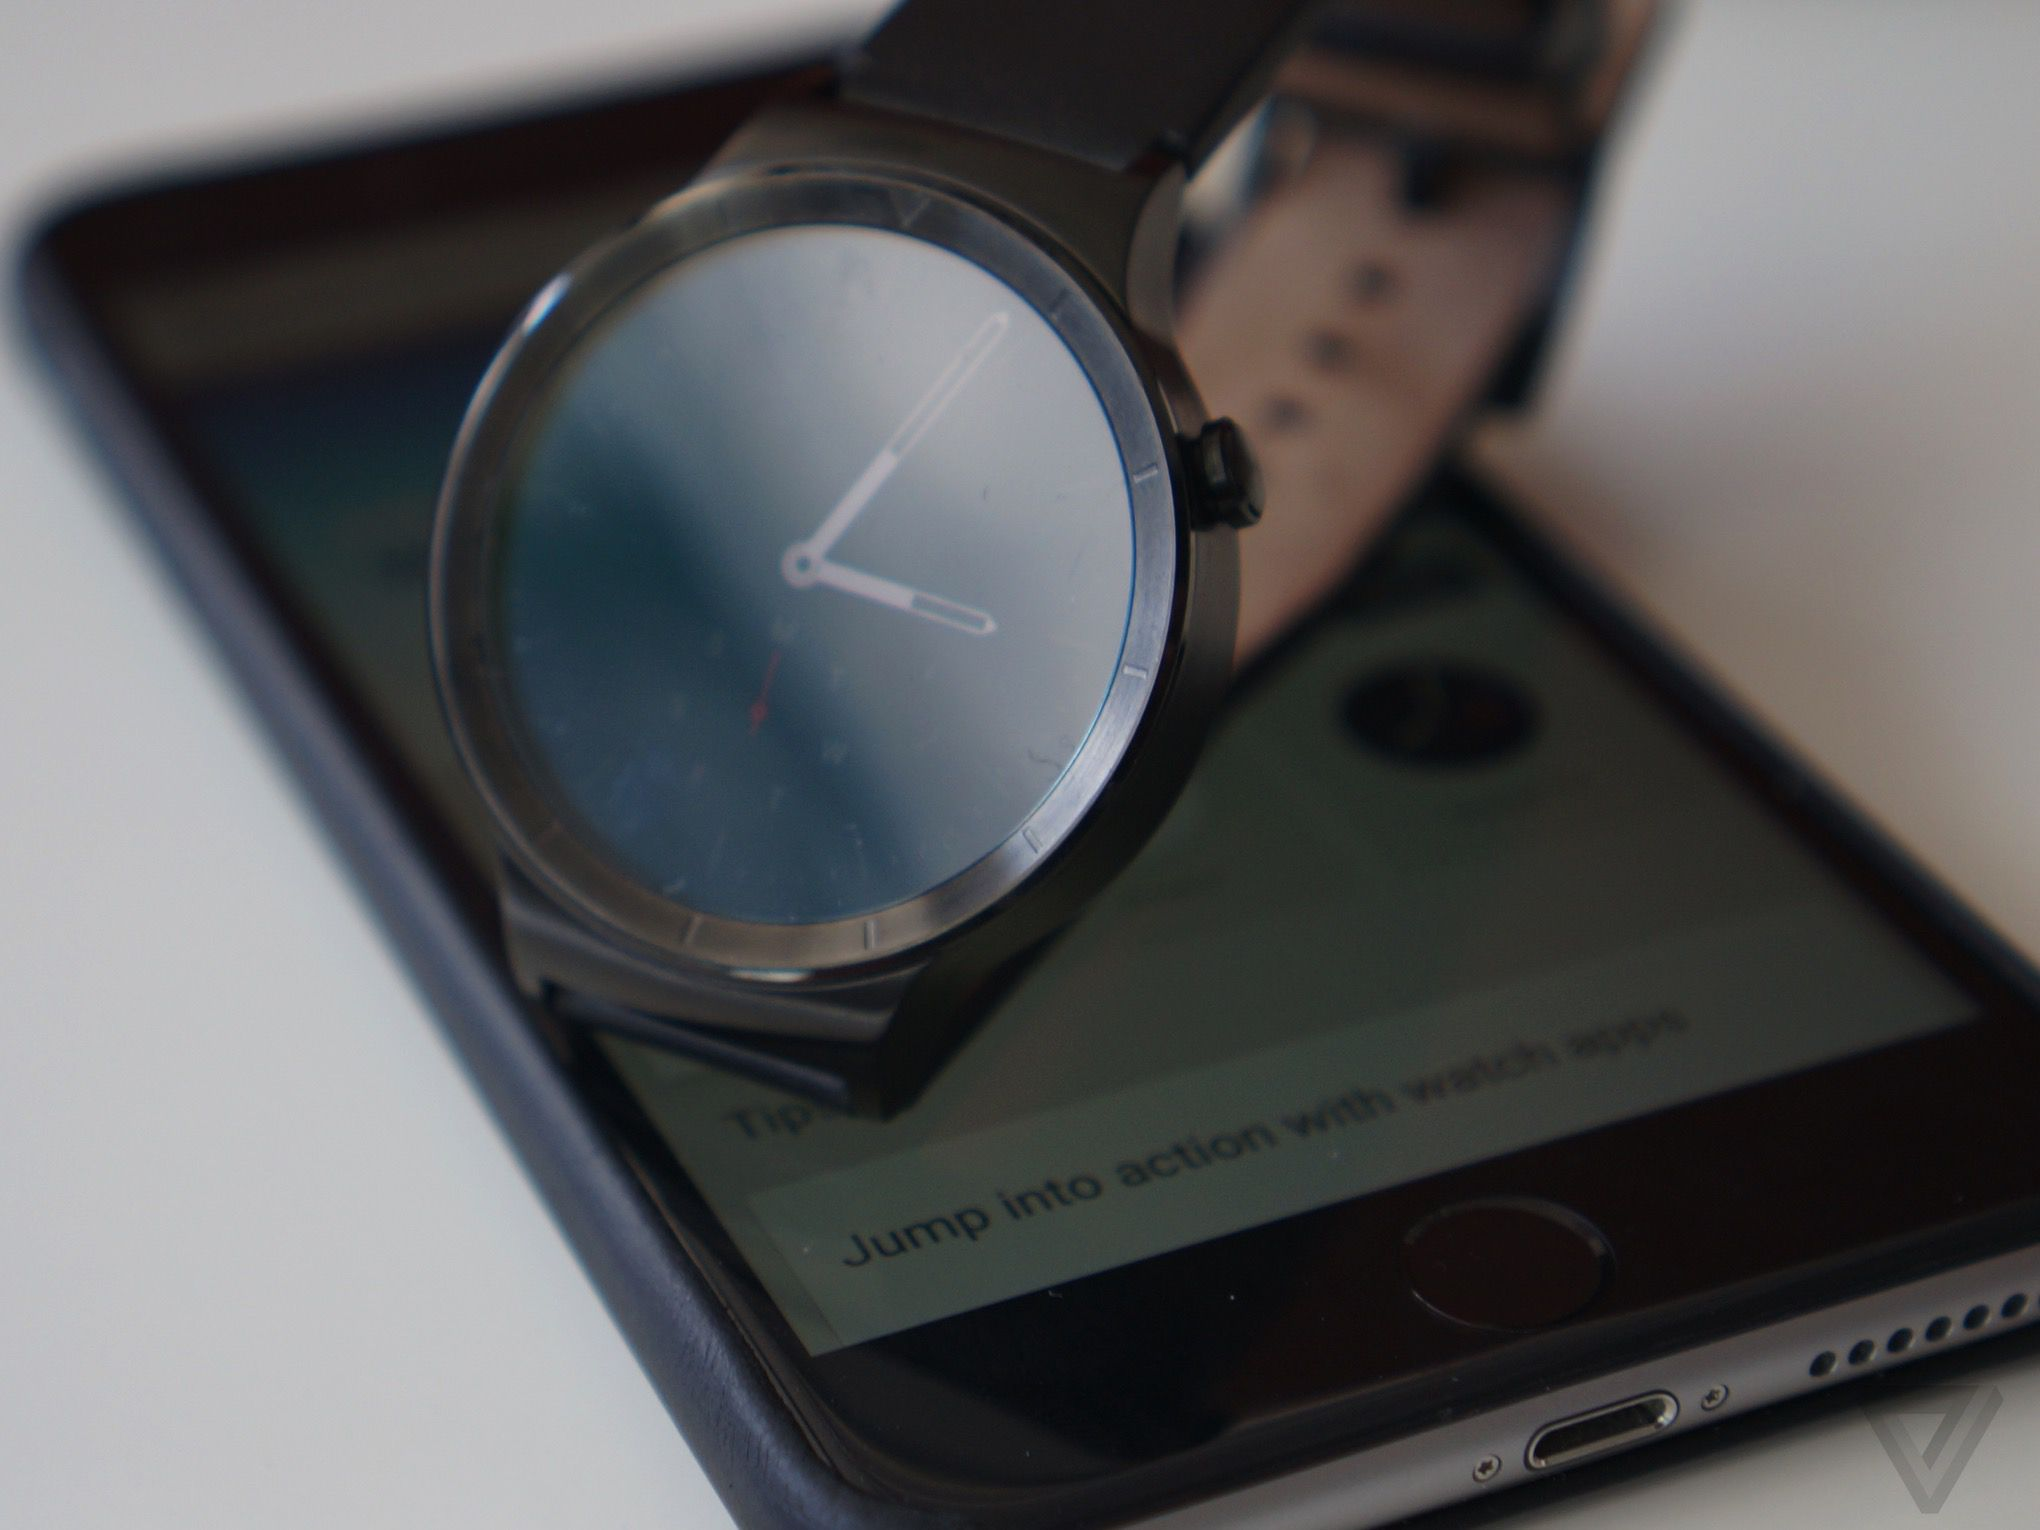 Android Wear smartwatches come to the iPhone   The Verge